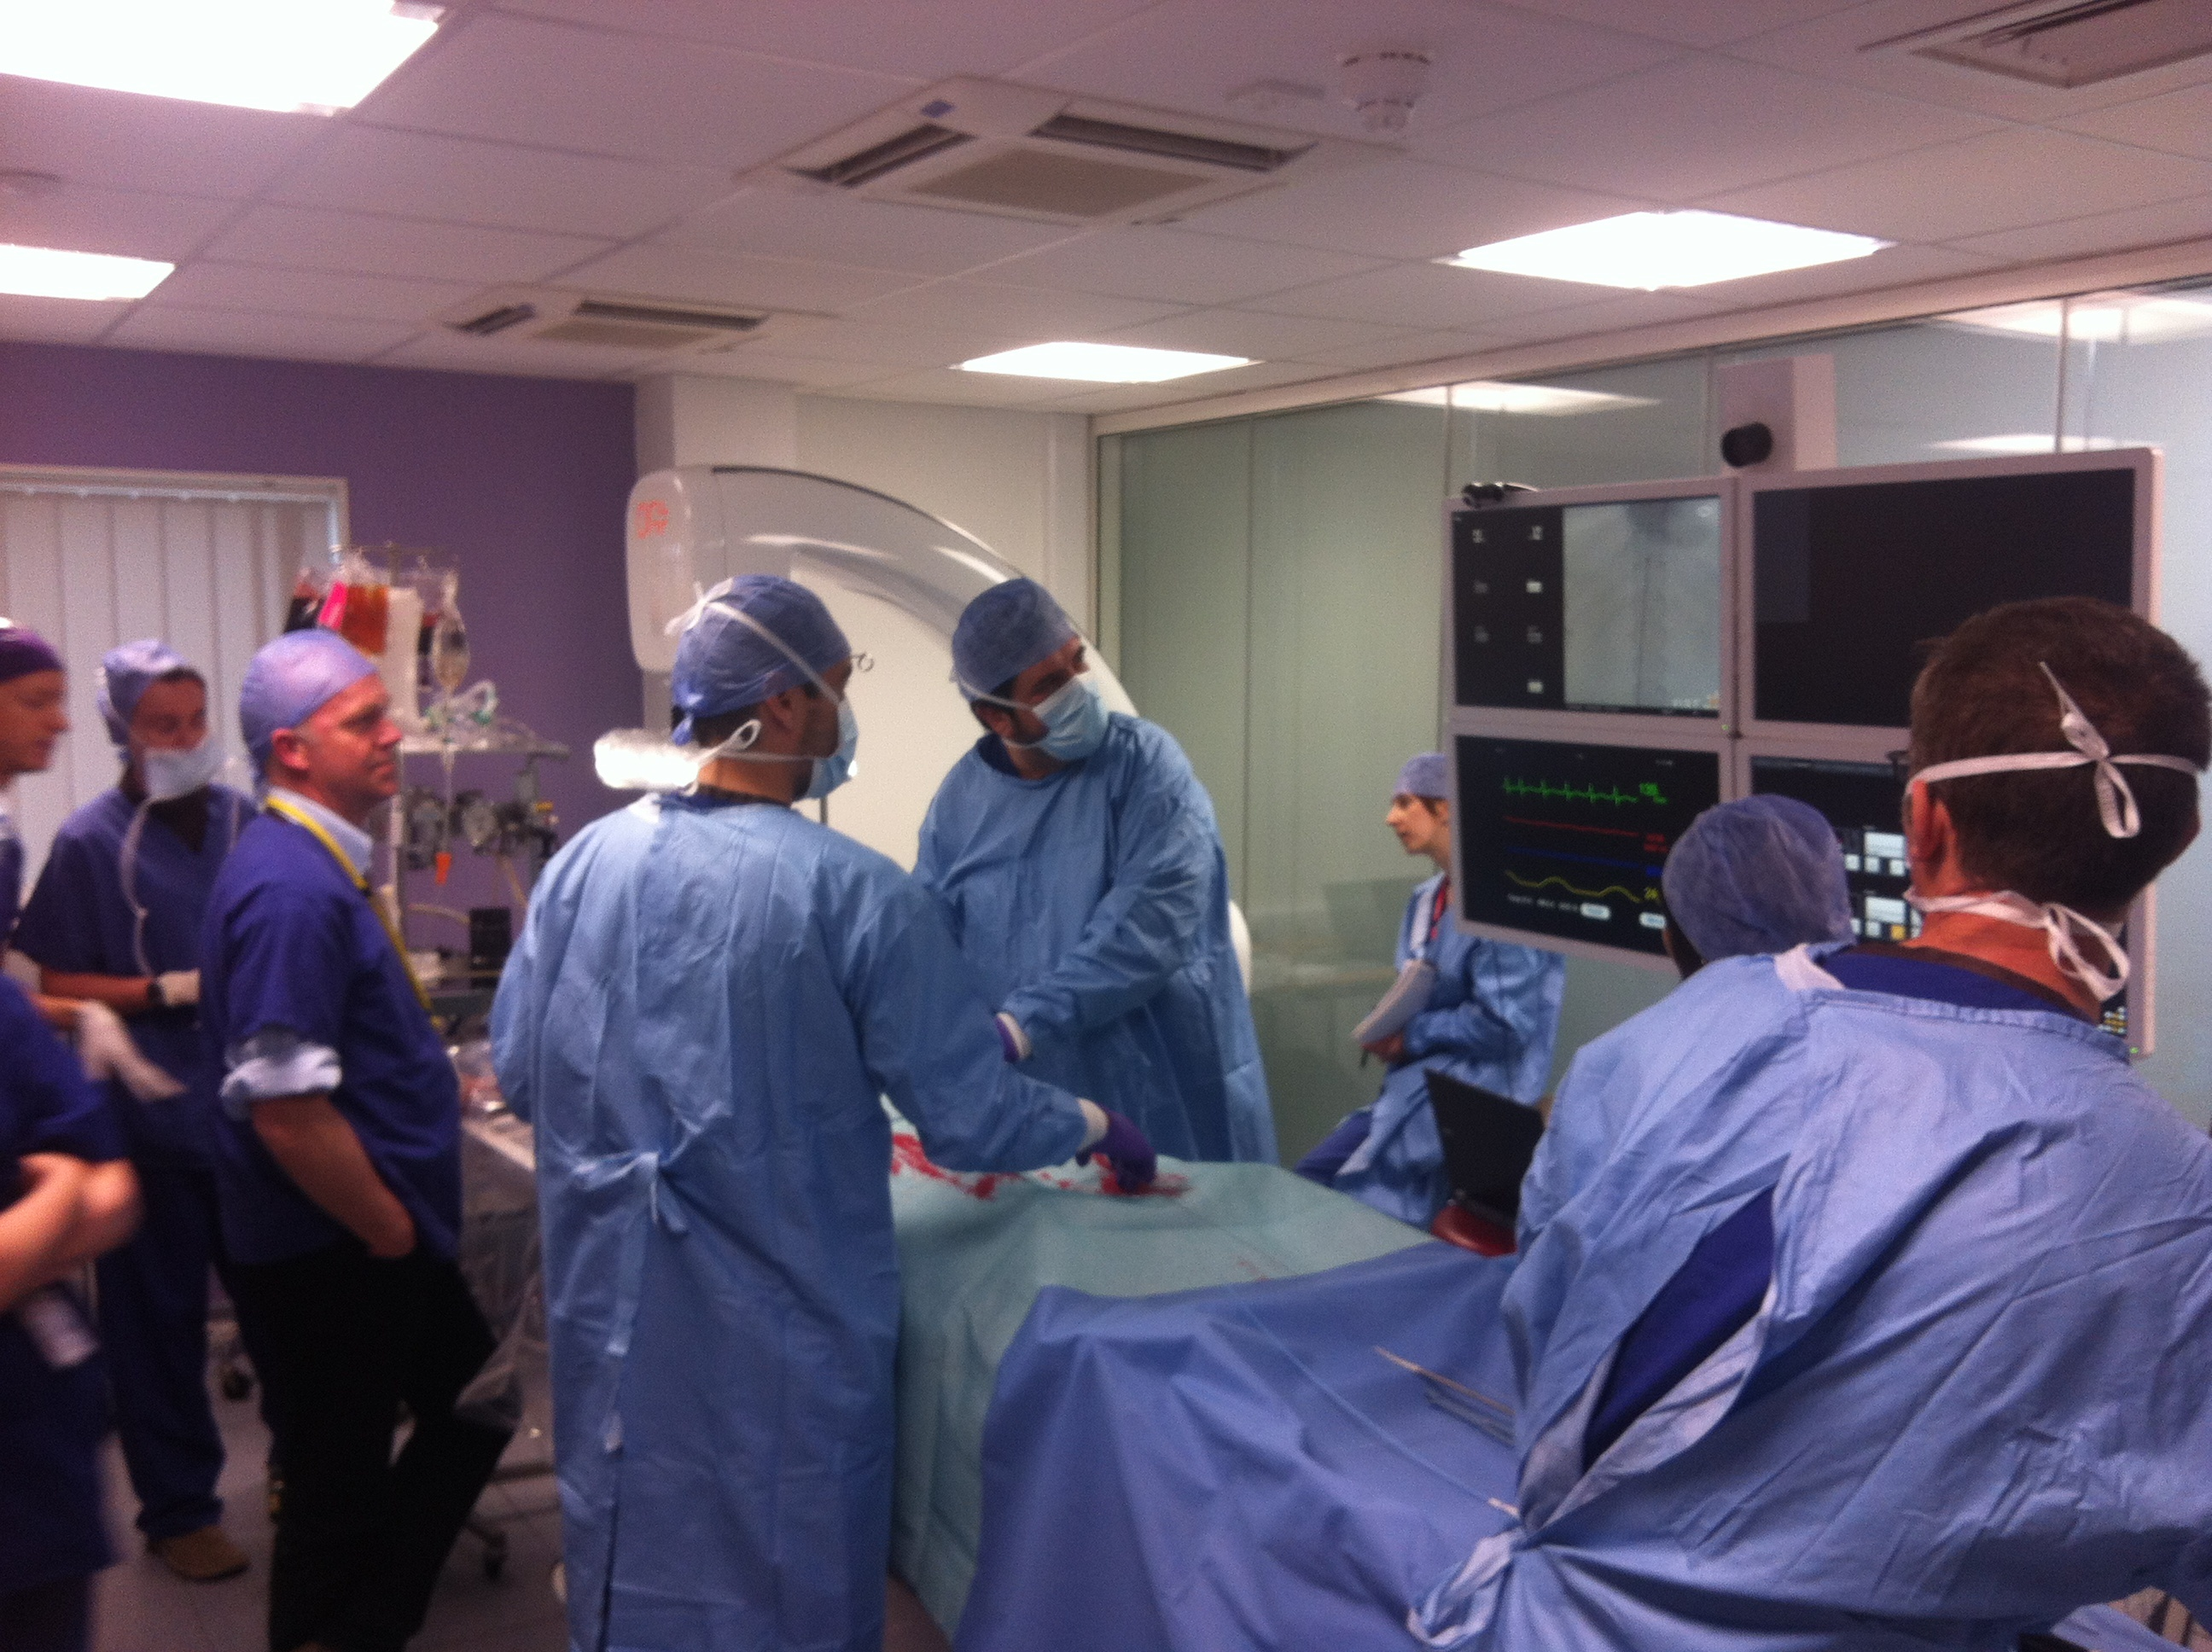 Simulation-based team training on vascular and endovascular procedures